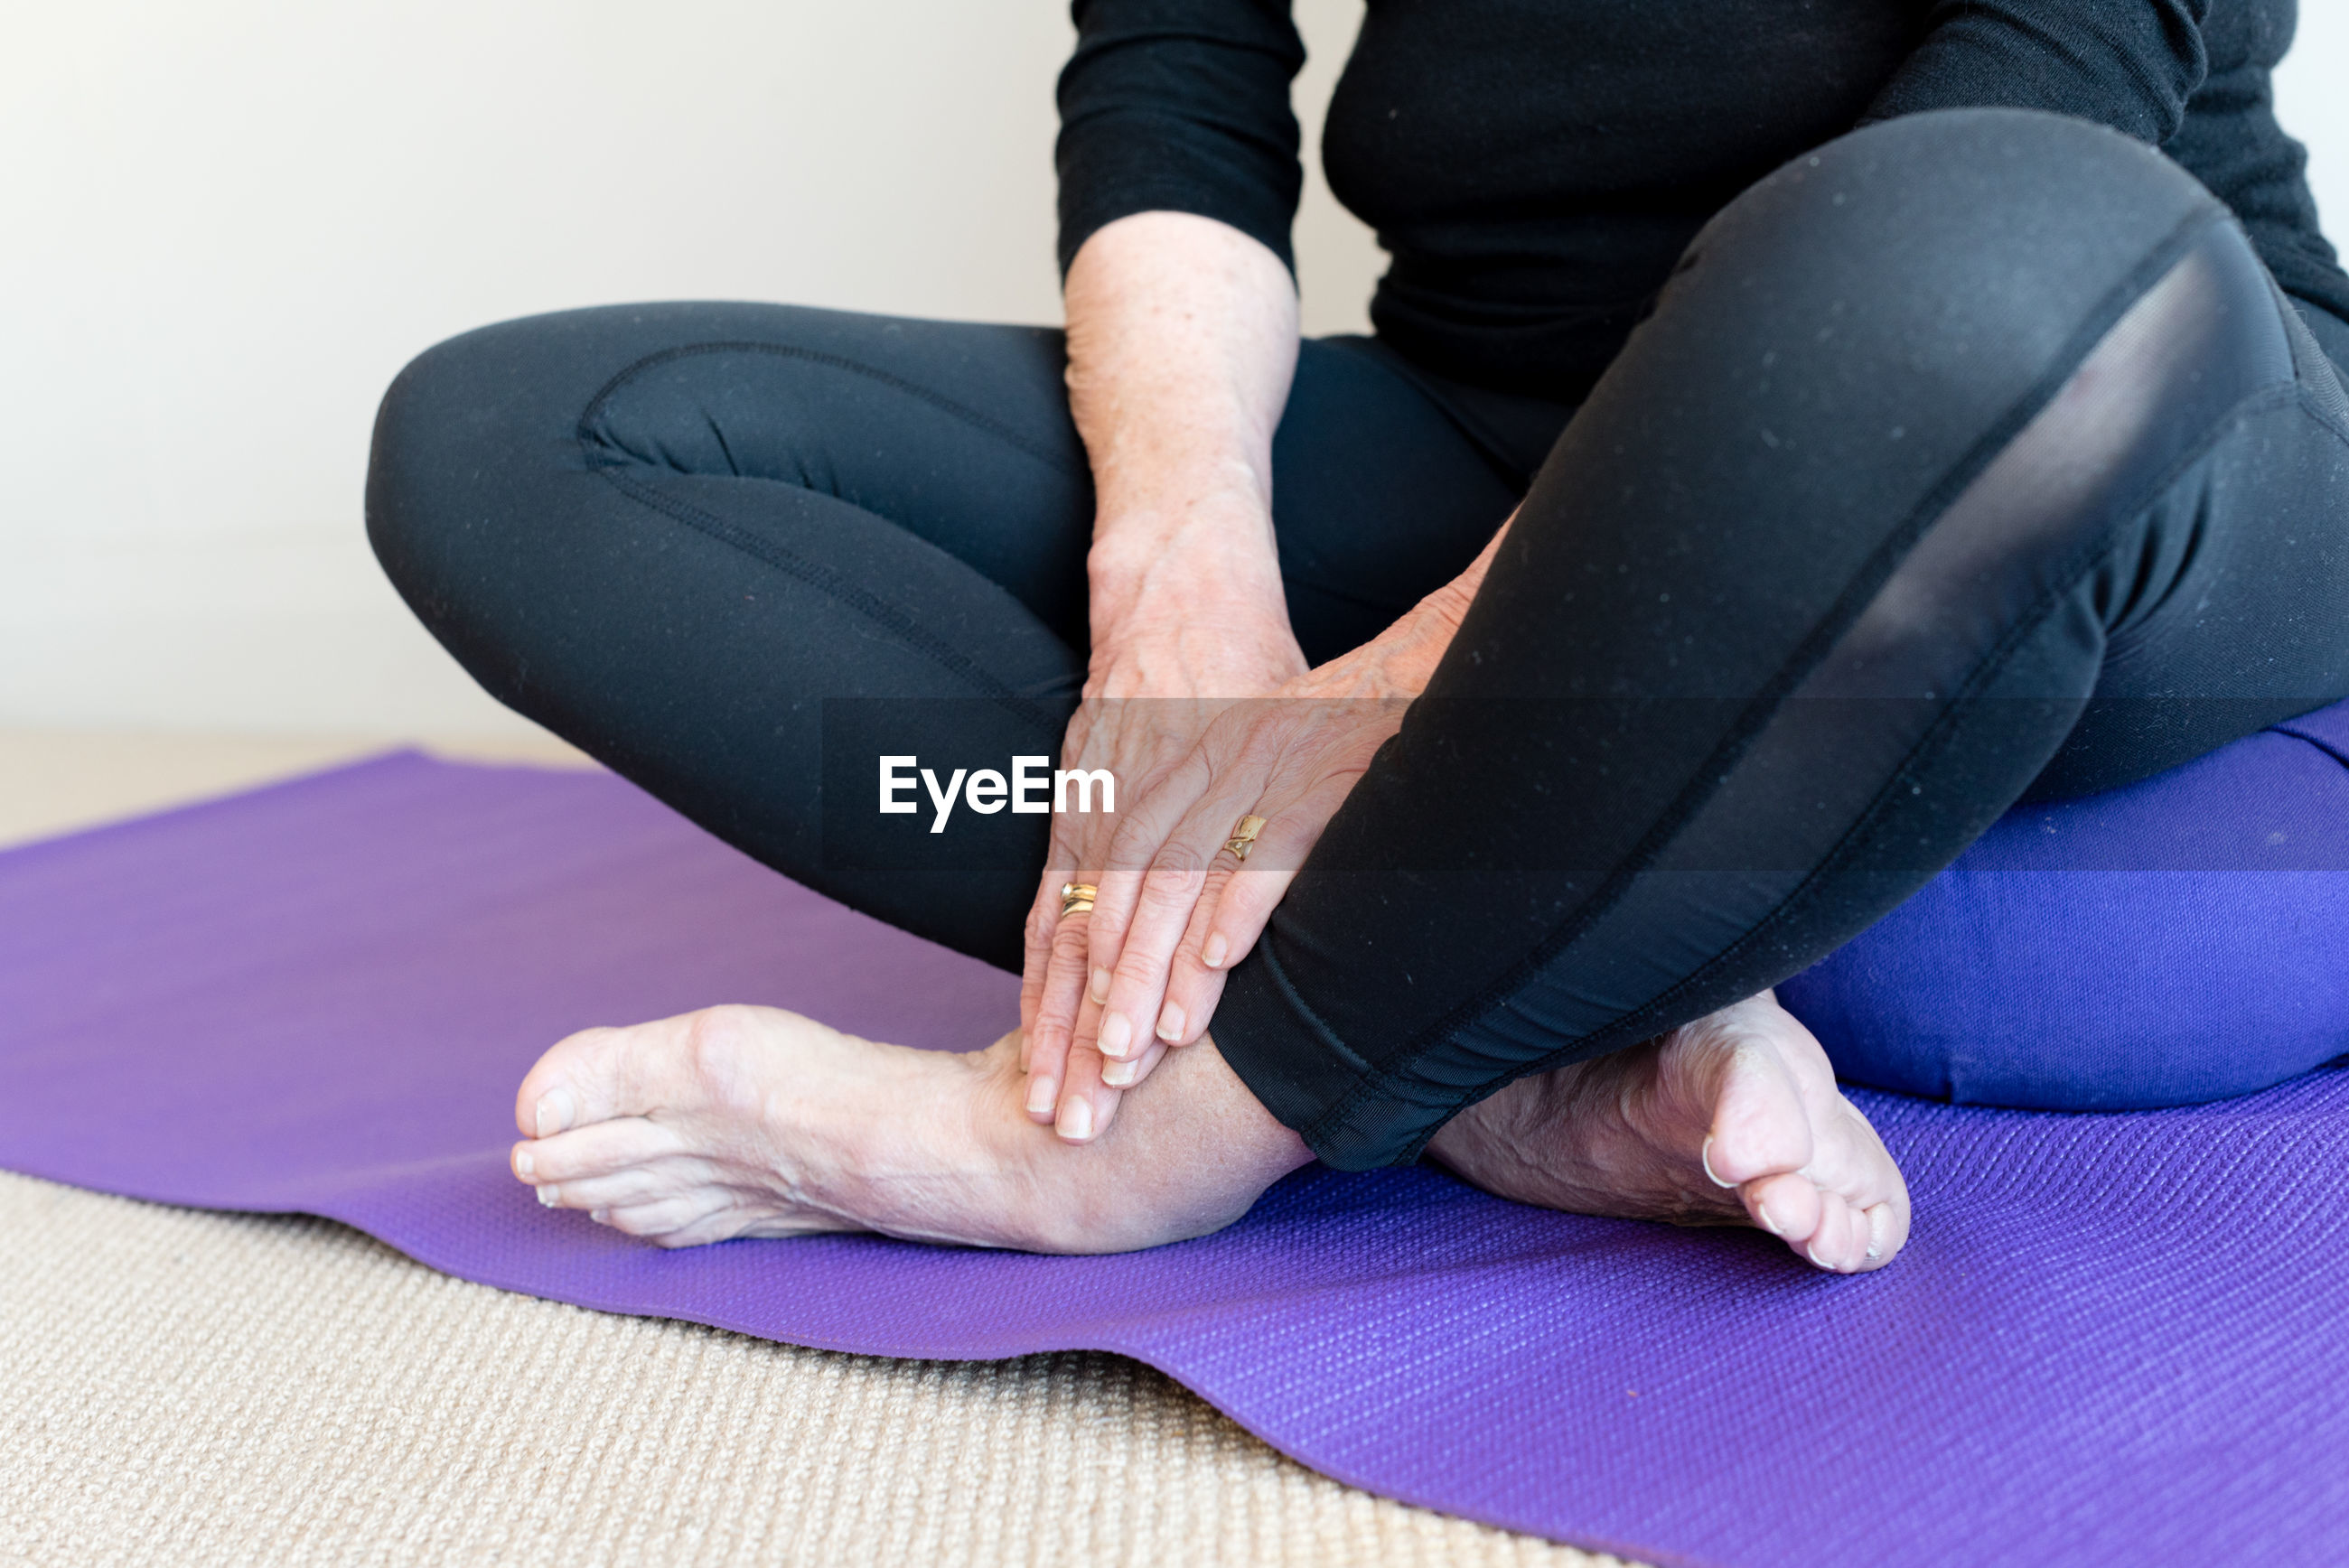 Low section of woman doing yoga on exercise mat